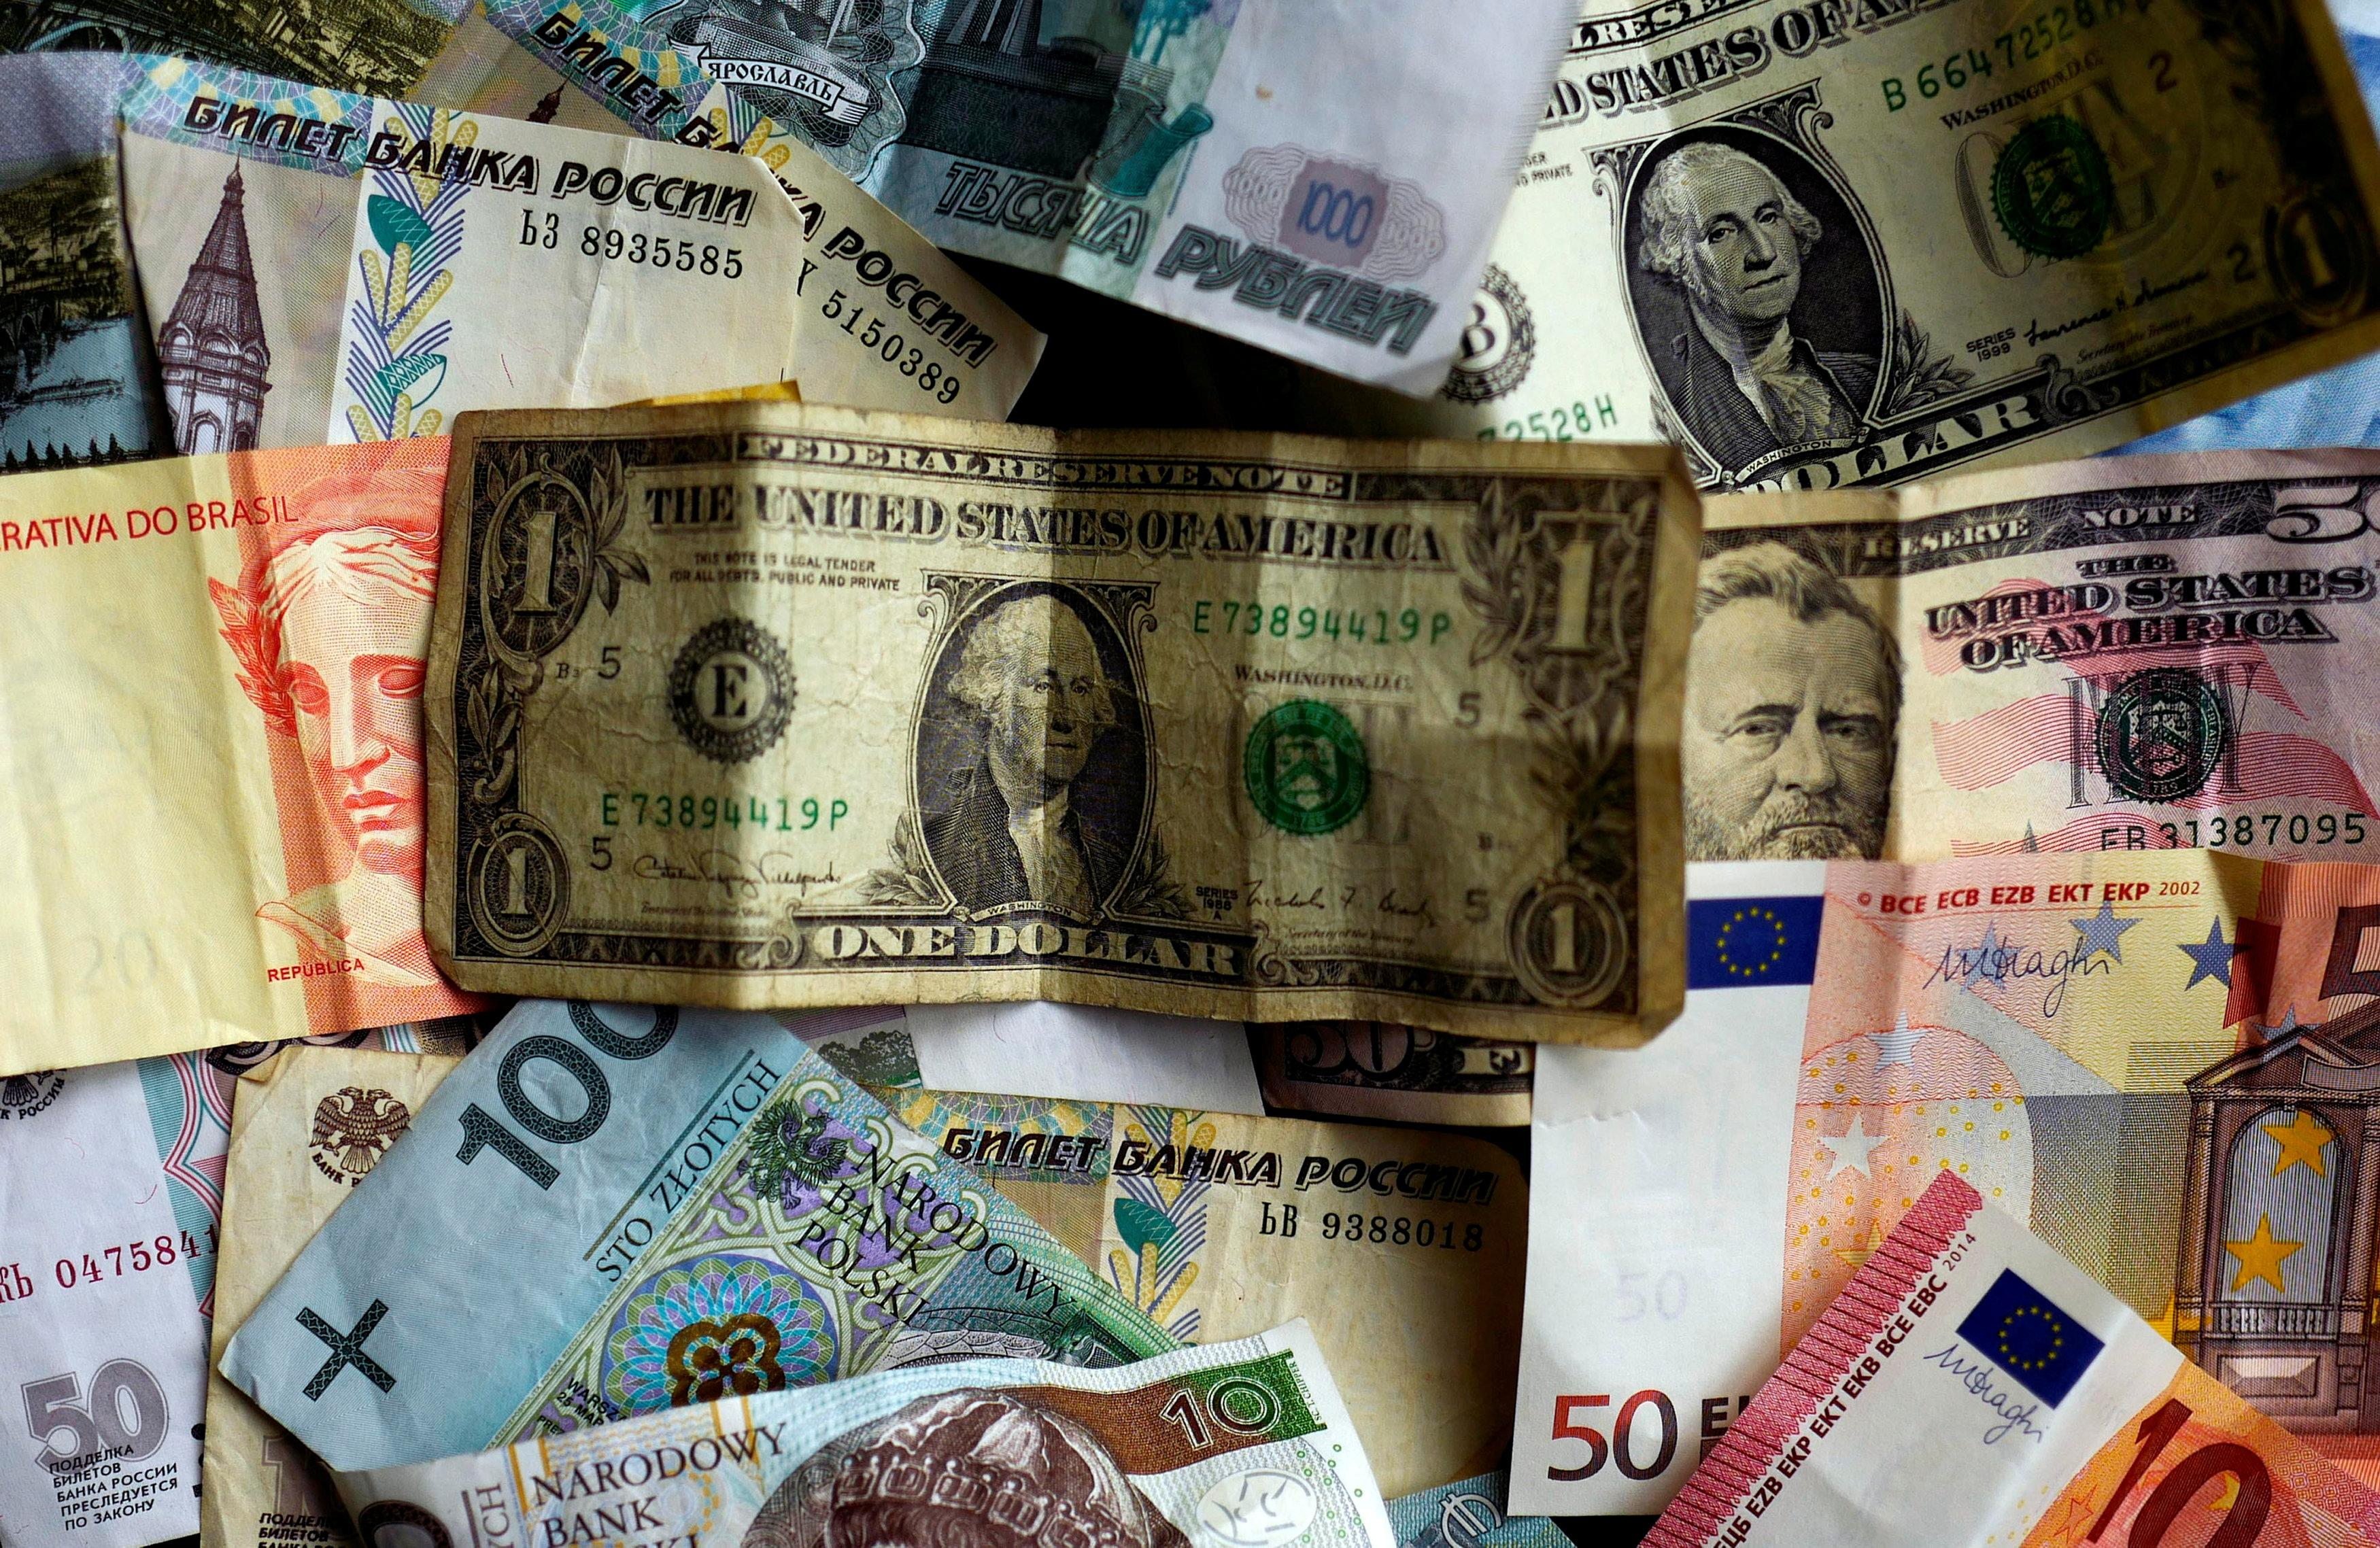 The U.S. dollar has weakened against most major currencies.